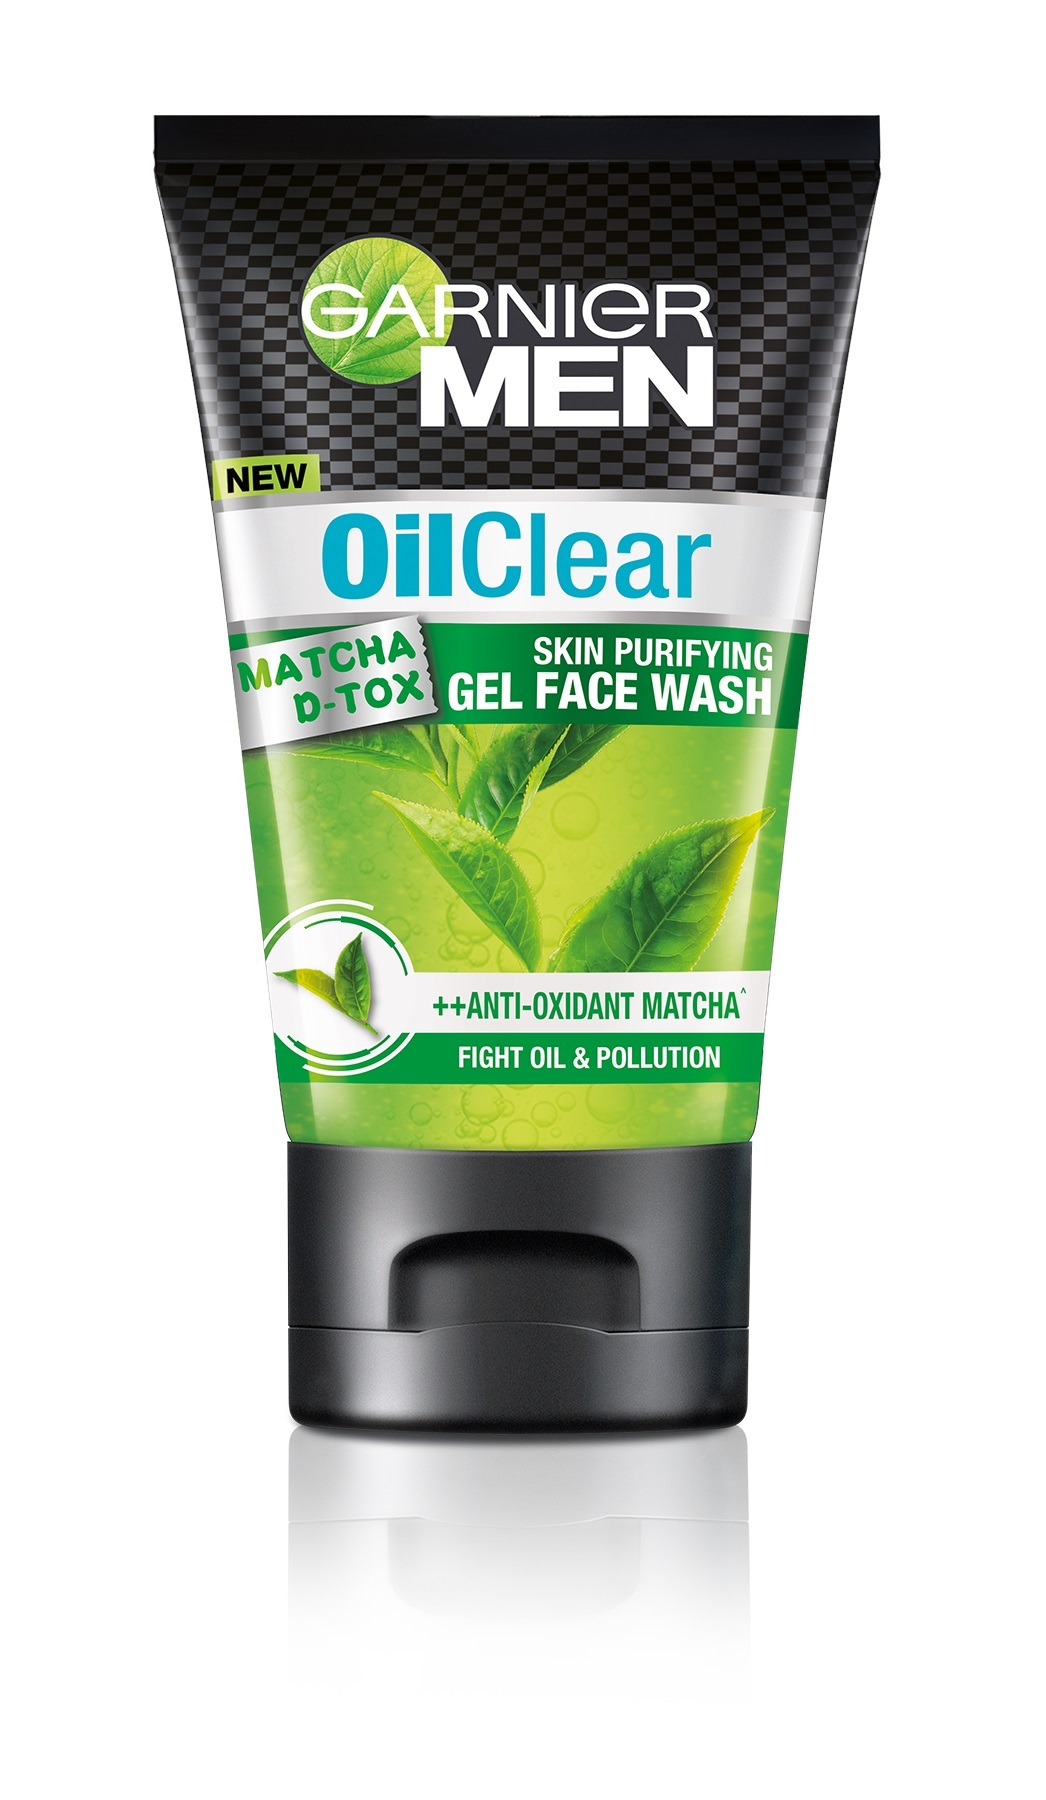 Garnier Men Oil Clear Matcha D-Tox Gel Face Wash  available at Nykaa for Rs.95